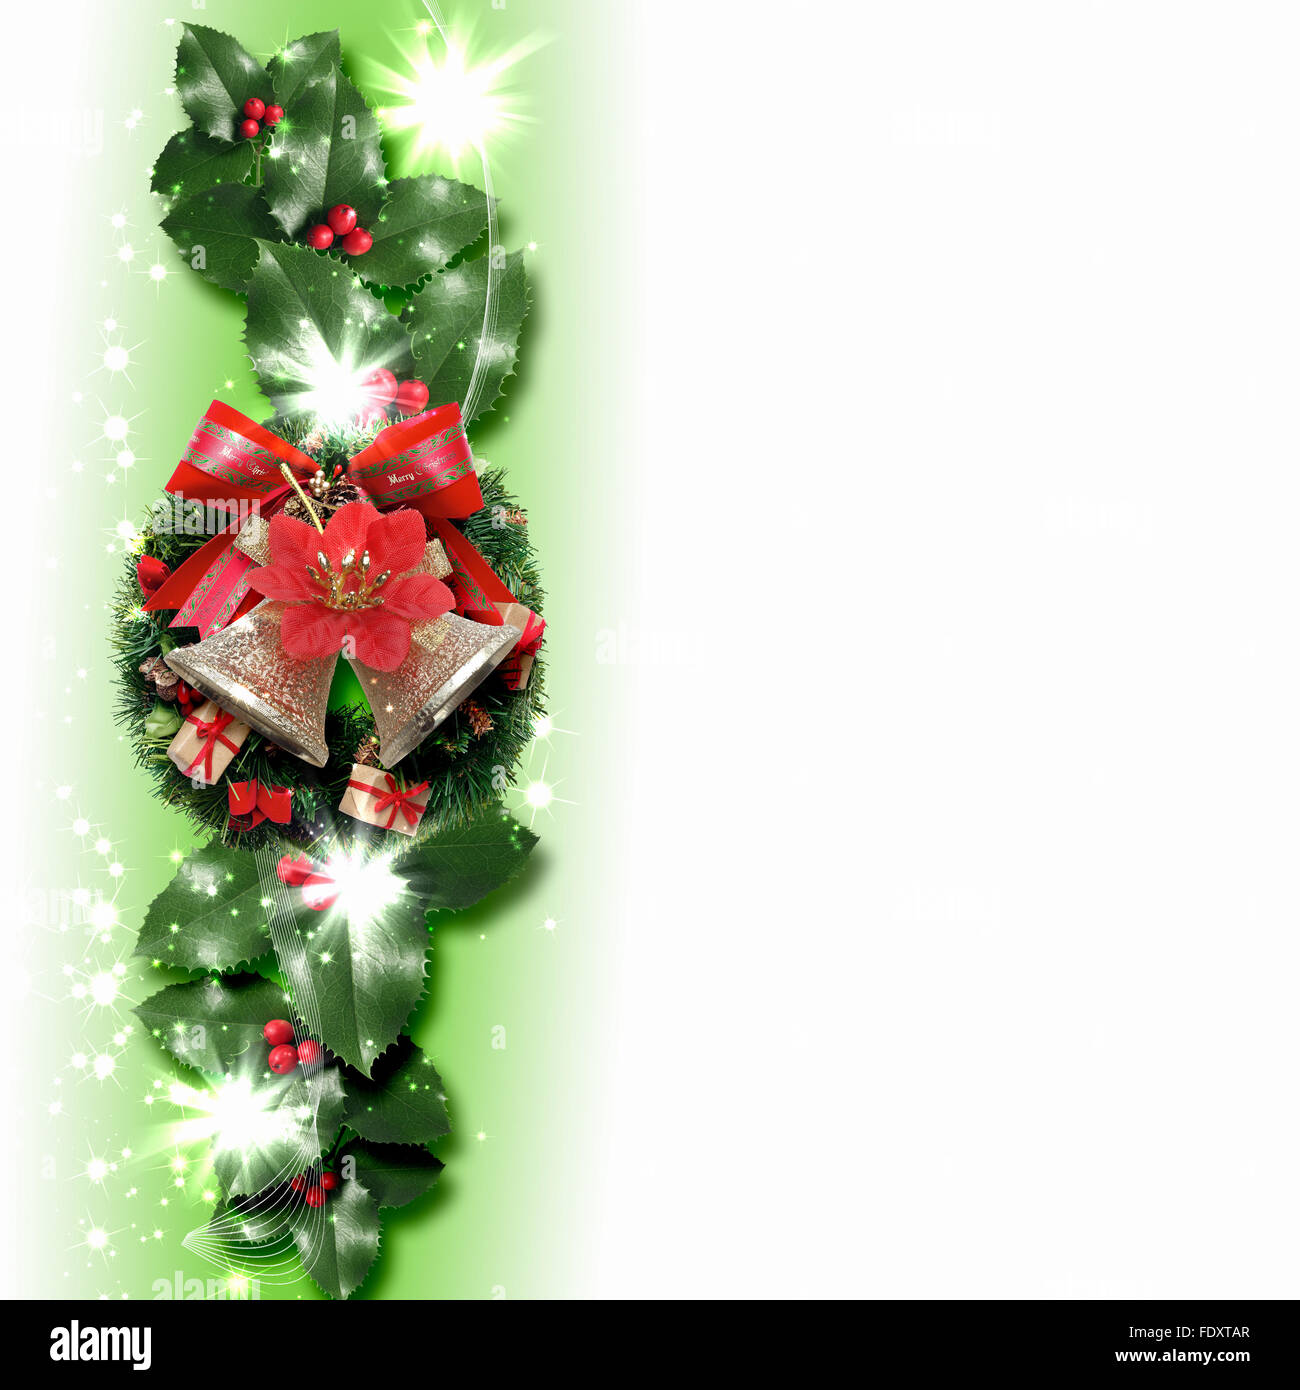 Why is holly a traditional christmas decoration - Illustration Of Background With Traditional Christmas Decoration Ornament